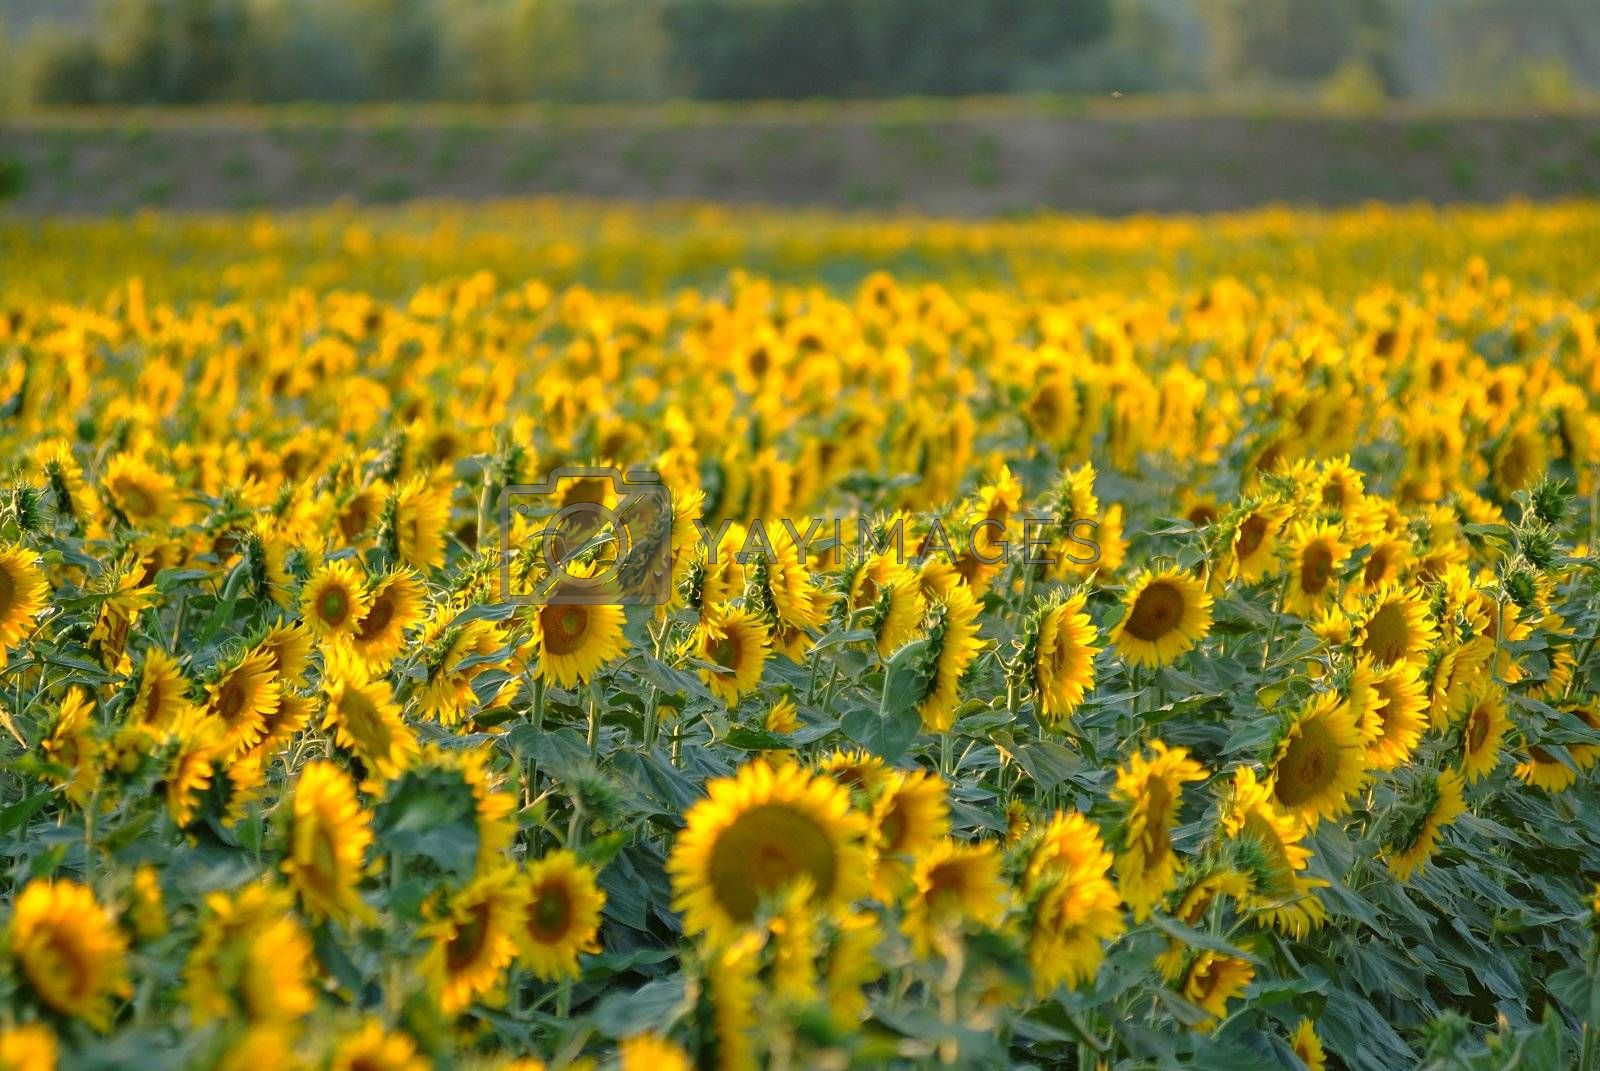 Sonnenblume | sunflowers by fotofritz